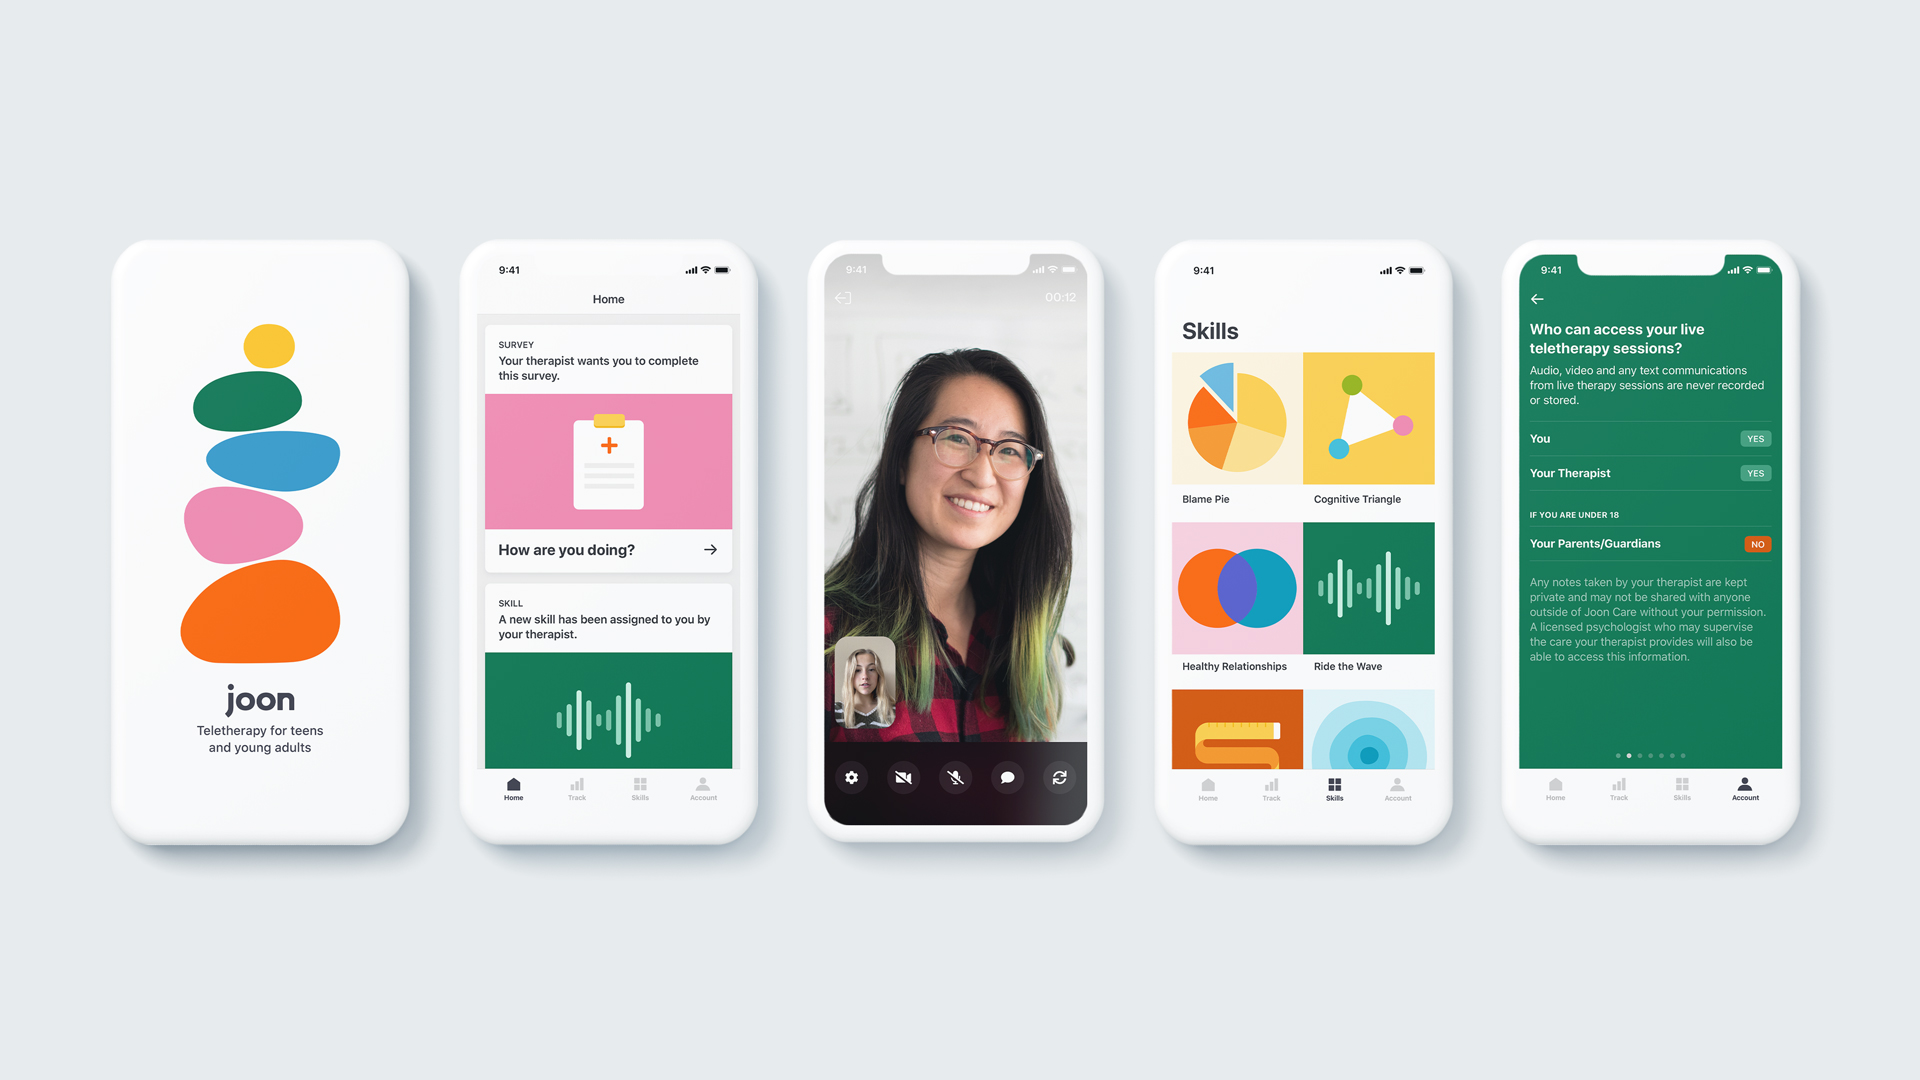 Product Images for the Youth Mobile App